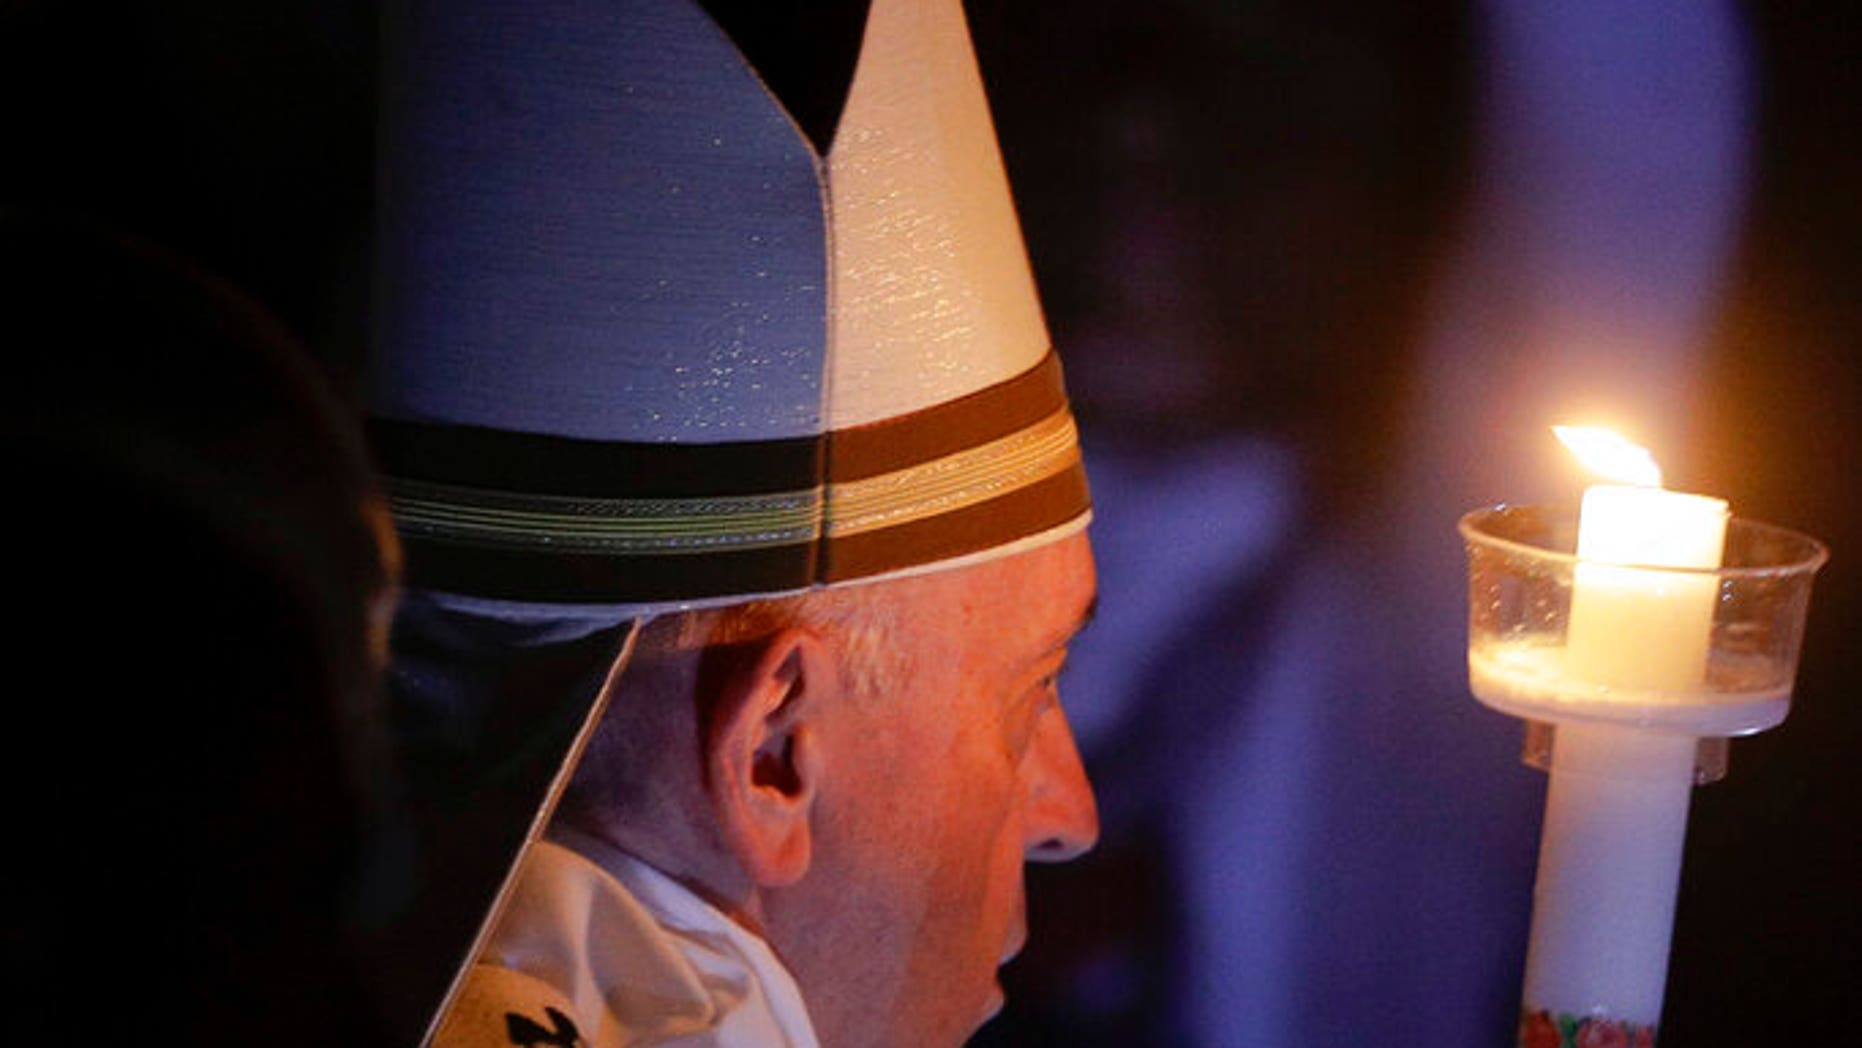 Pope Francis holds a candle as he presides over a solemn Easter vigil ceremony in St. Peter's Basilica at the Vatican, Saturday, April 21, 2019. (AP Photo/Gregorio Borgia)